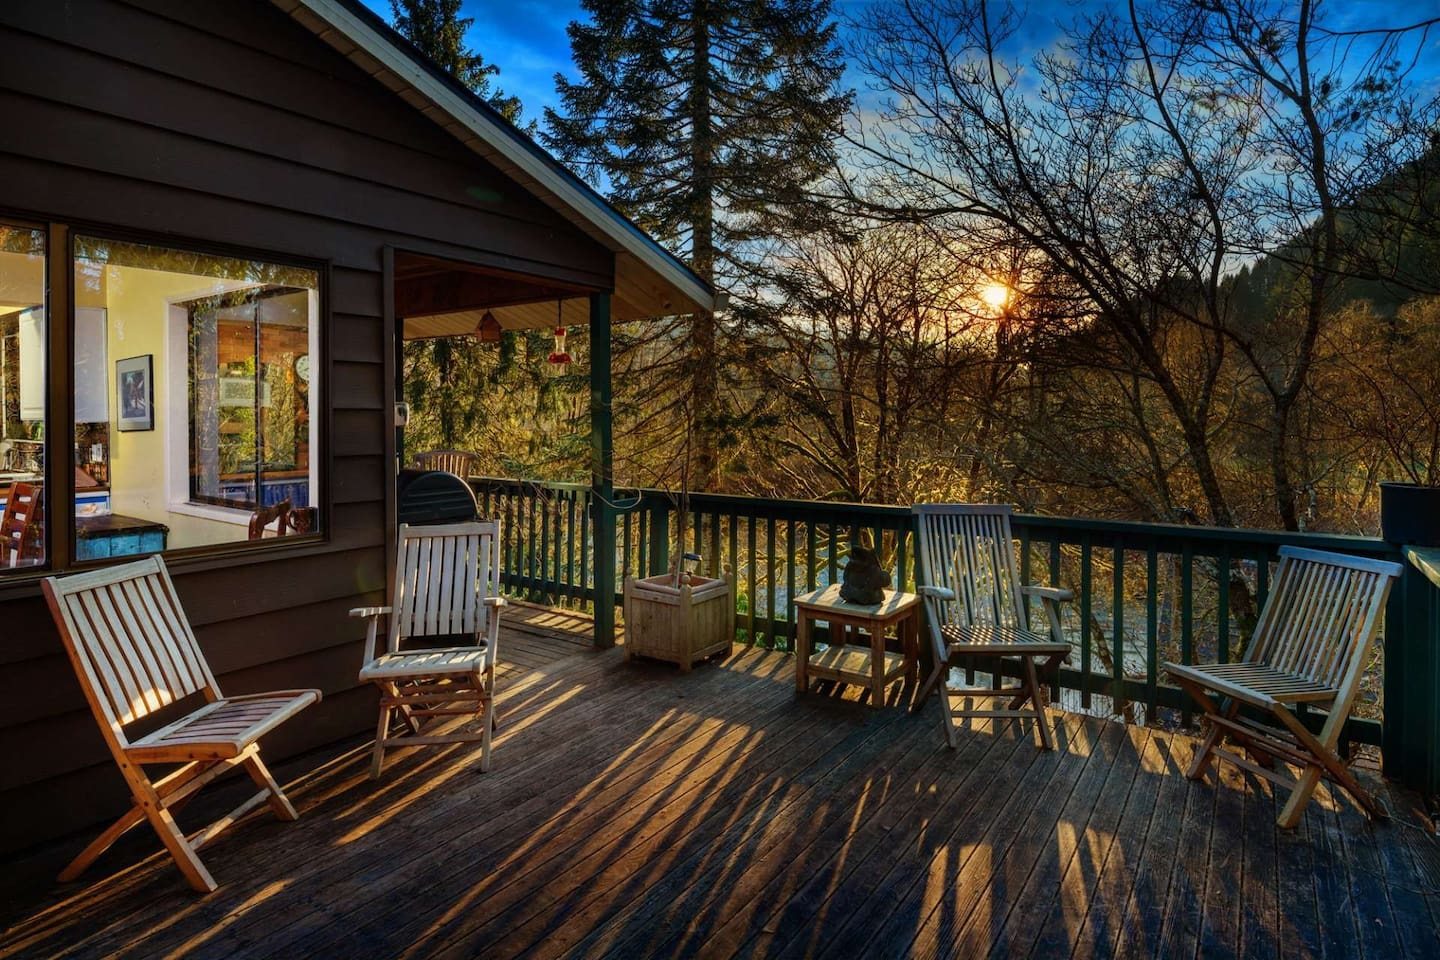 Stunning views and deck area to enjoy year round.